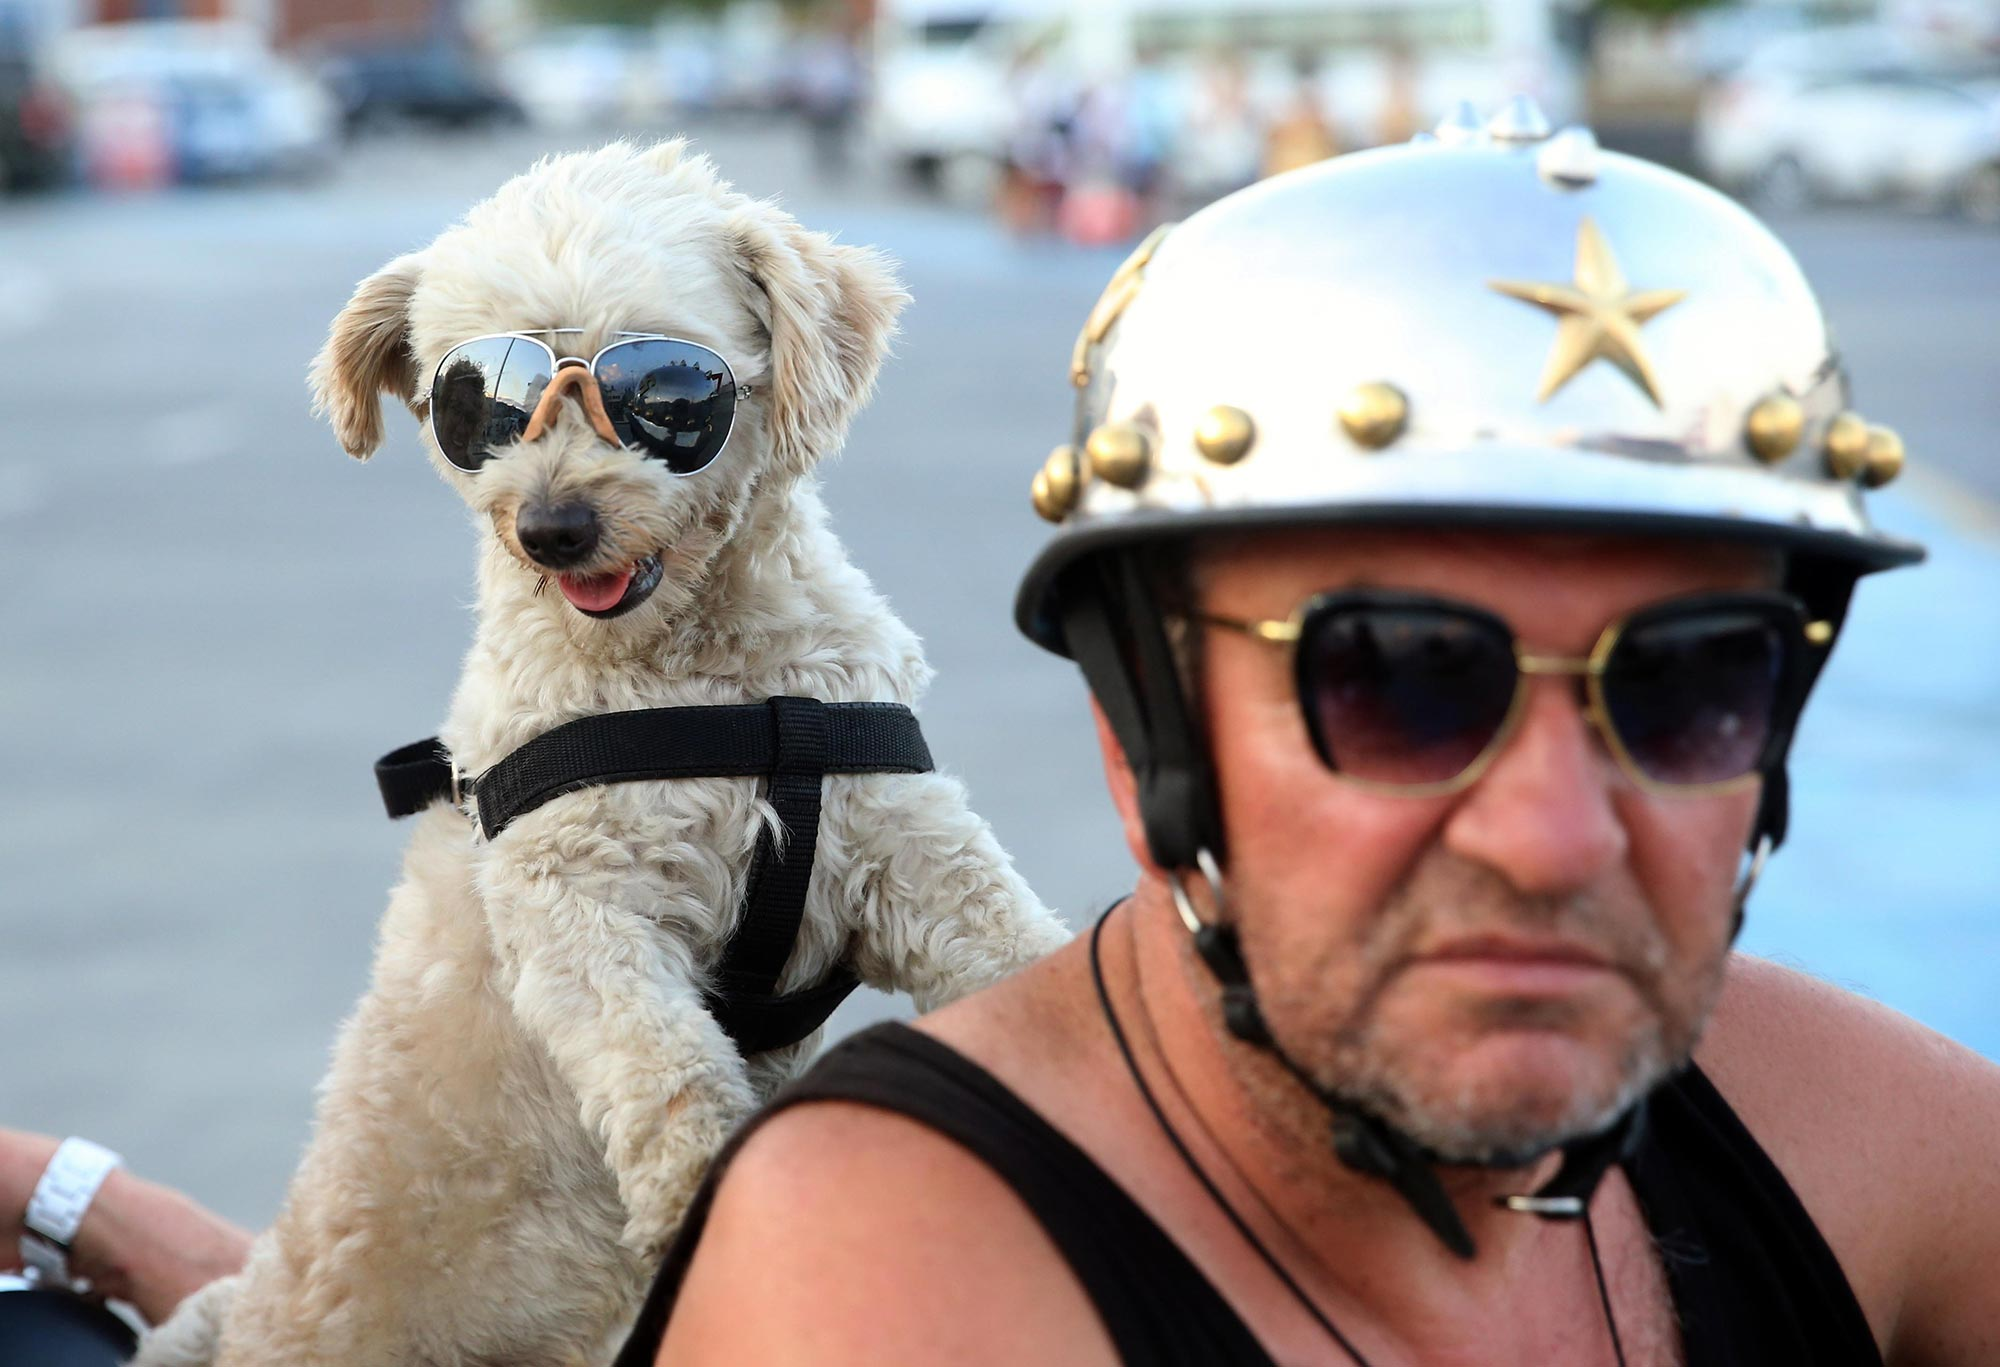 Haki Usta and his dog Kafe have been riding together for years–they even have matching shades